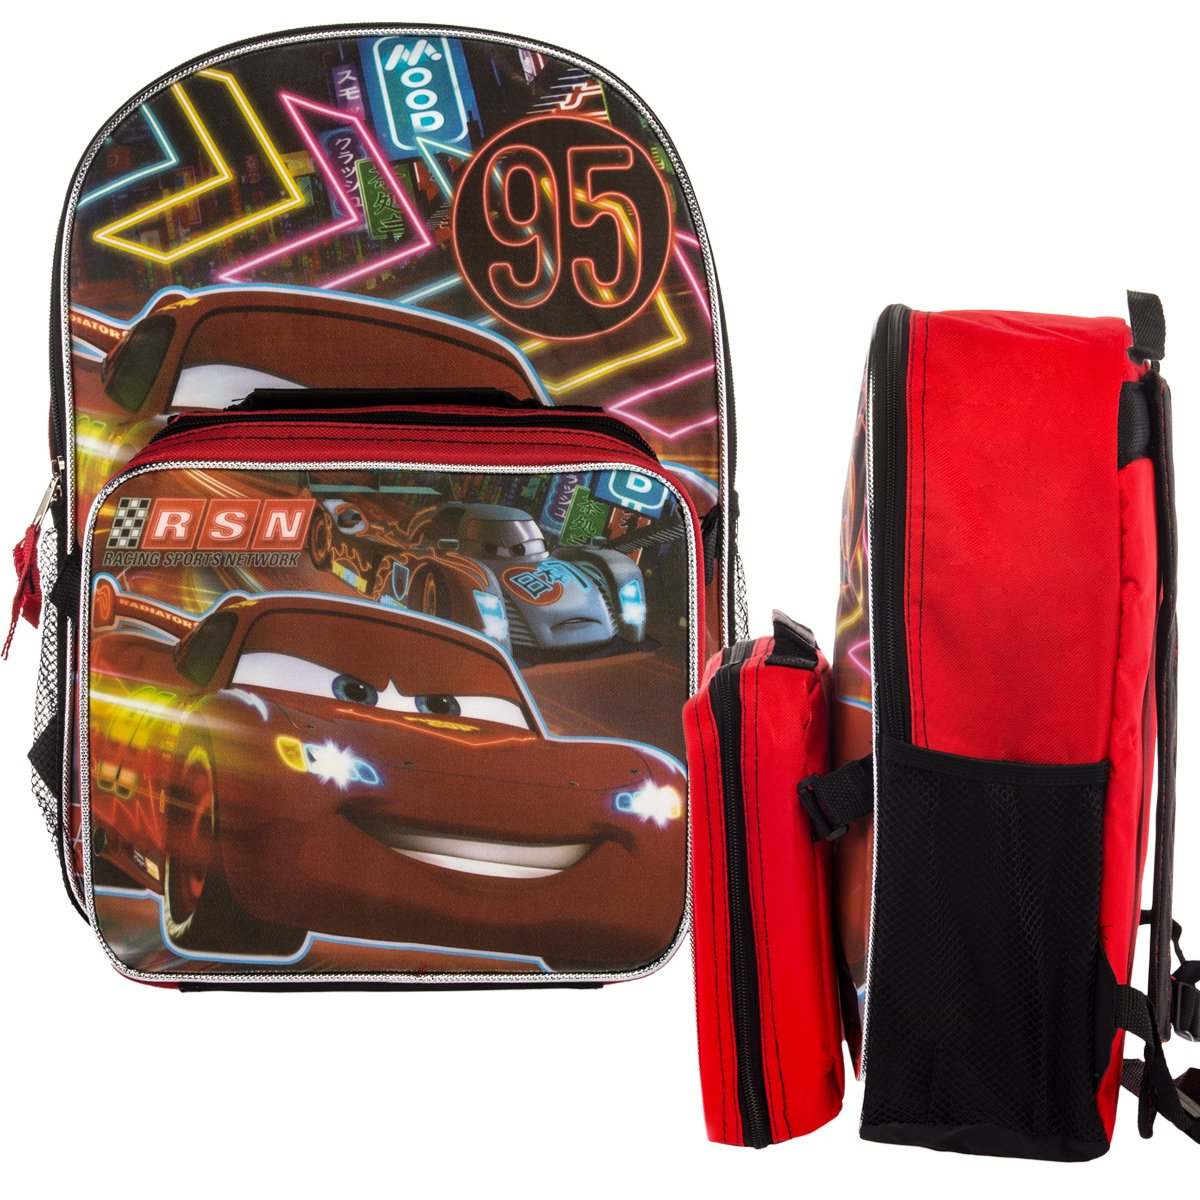 School Bag Set Labrador Print Backpack Daypack With Lunchbags Totes Pencil case